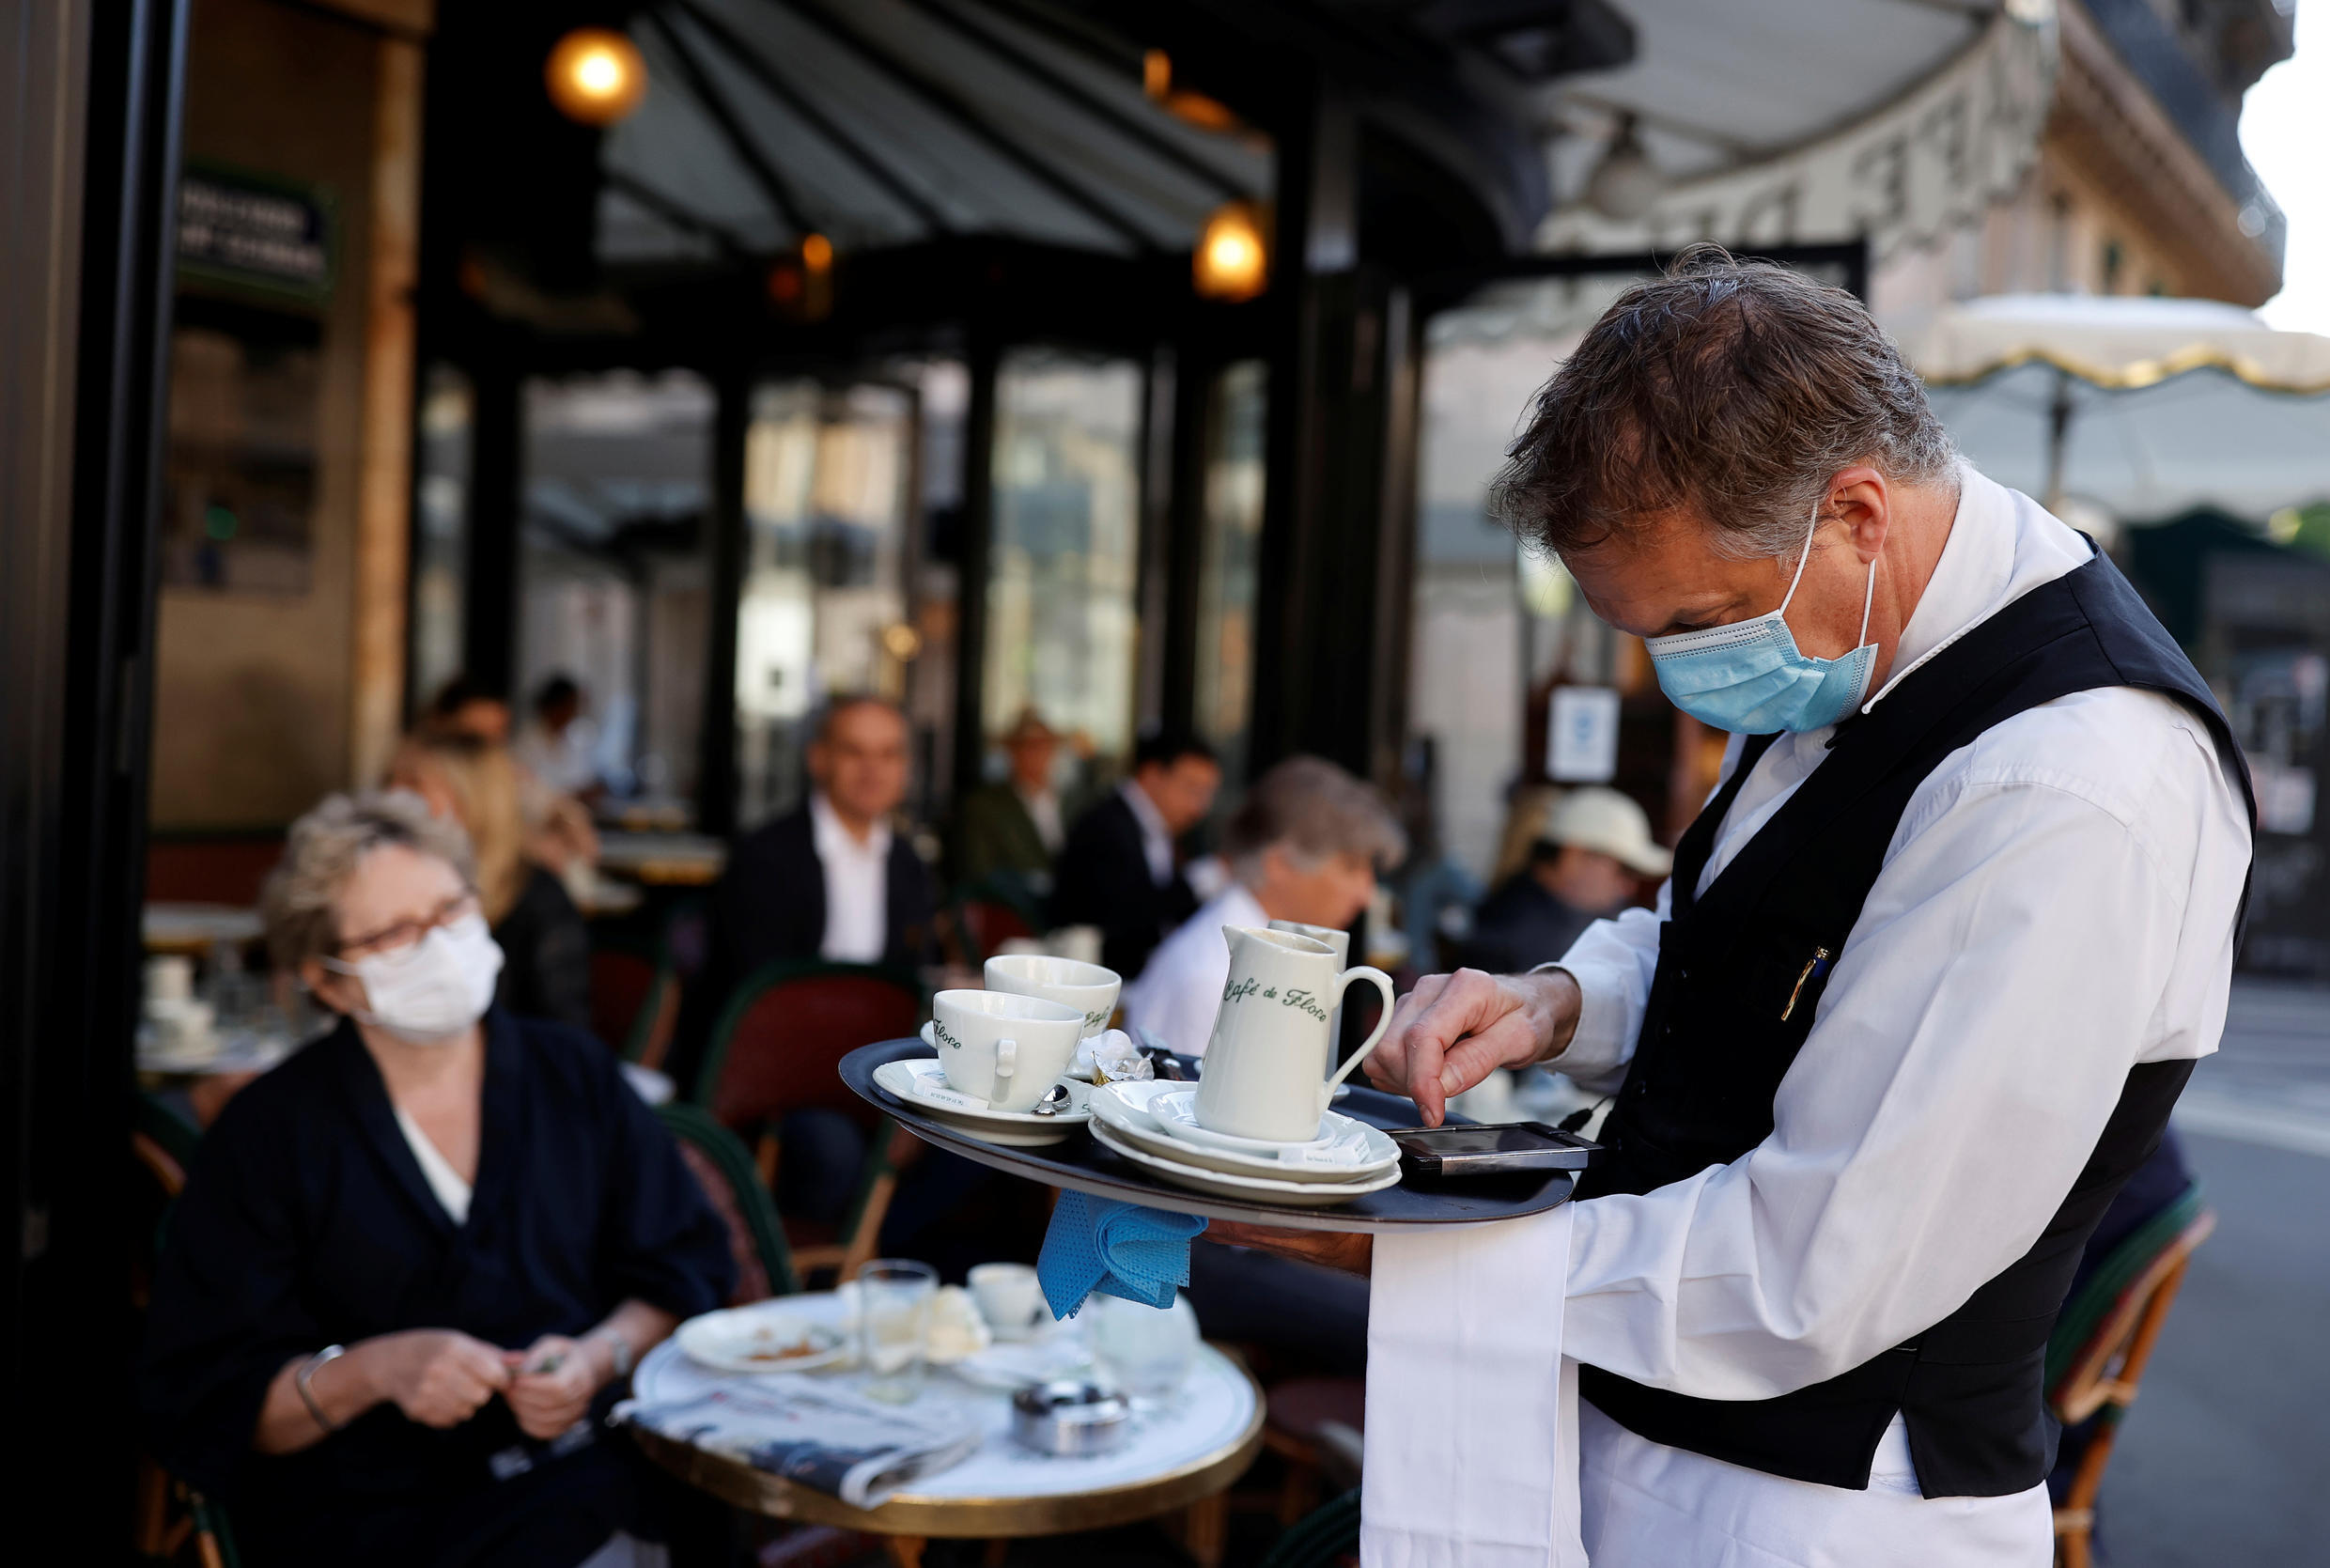 A waiter wearing a face mask serves customers at Cafe de Flore, in Paris on 2 June, 2020.